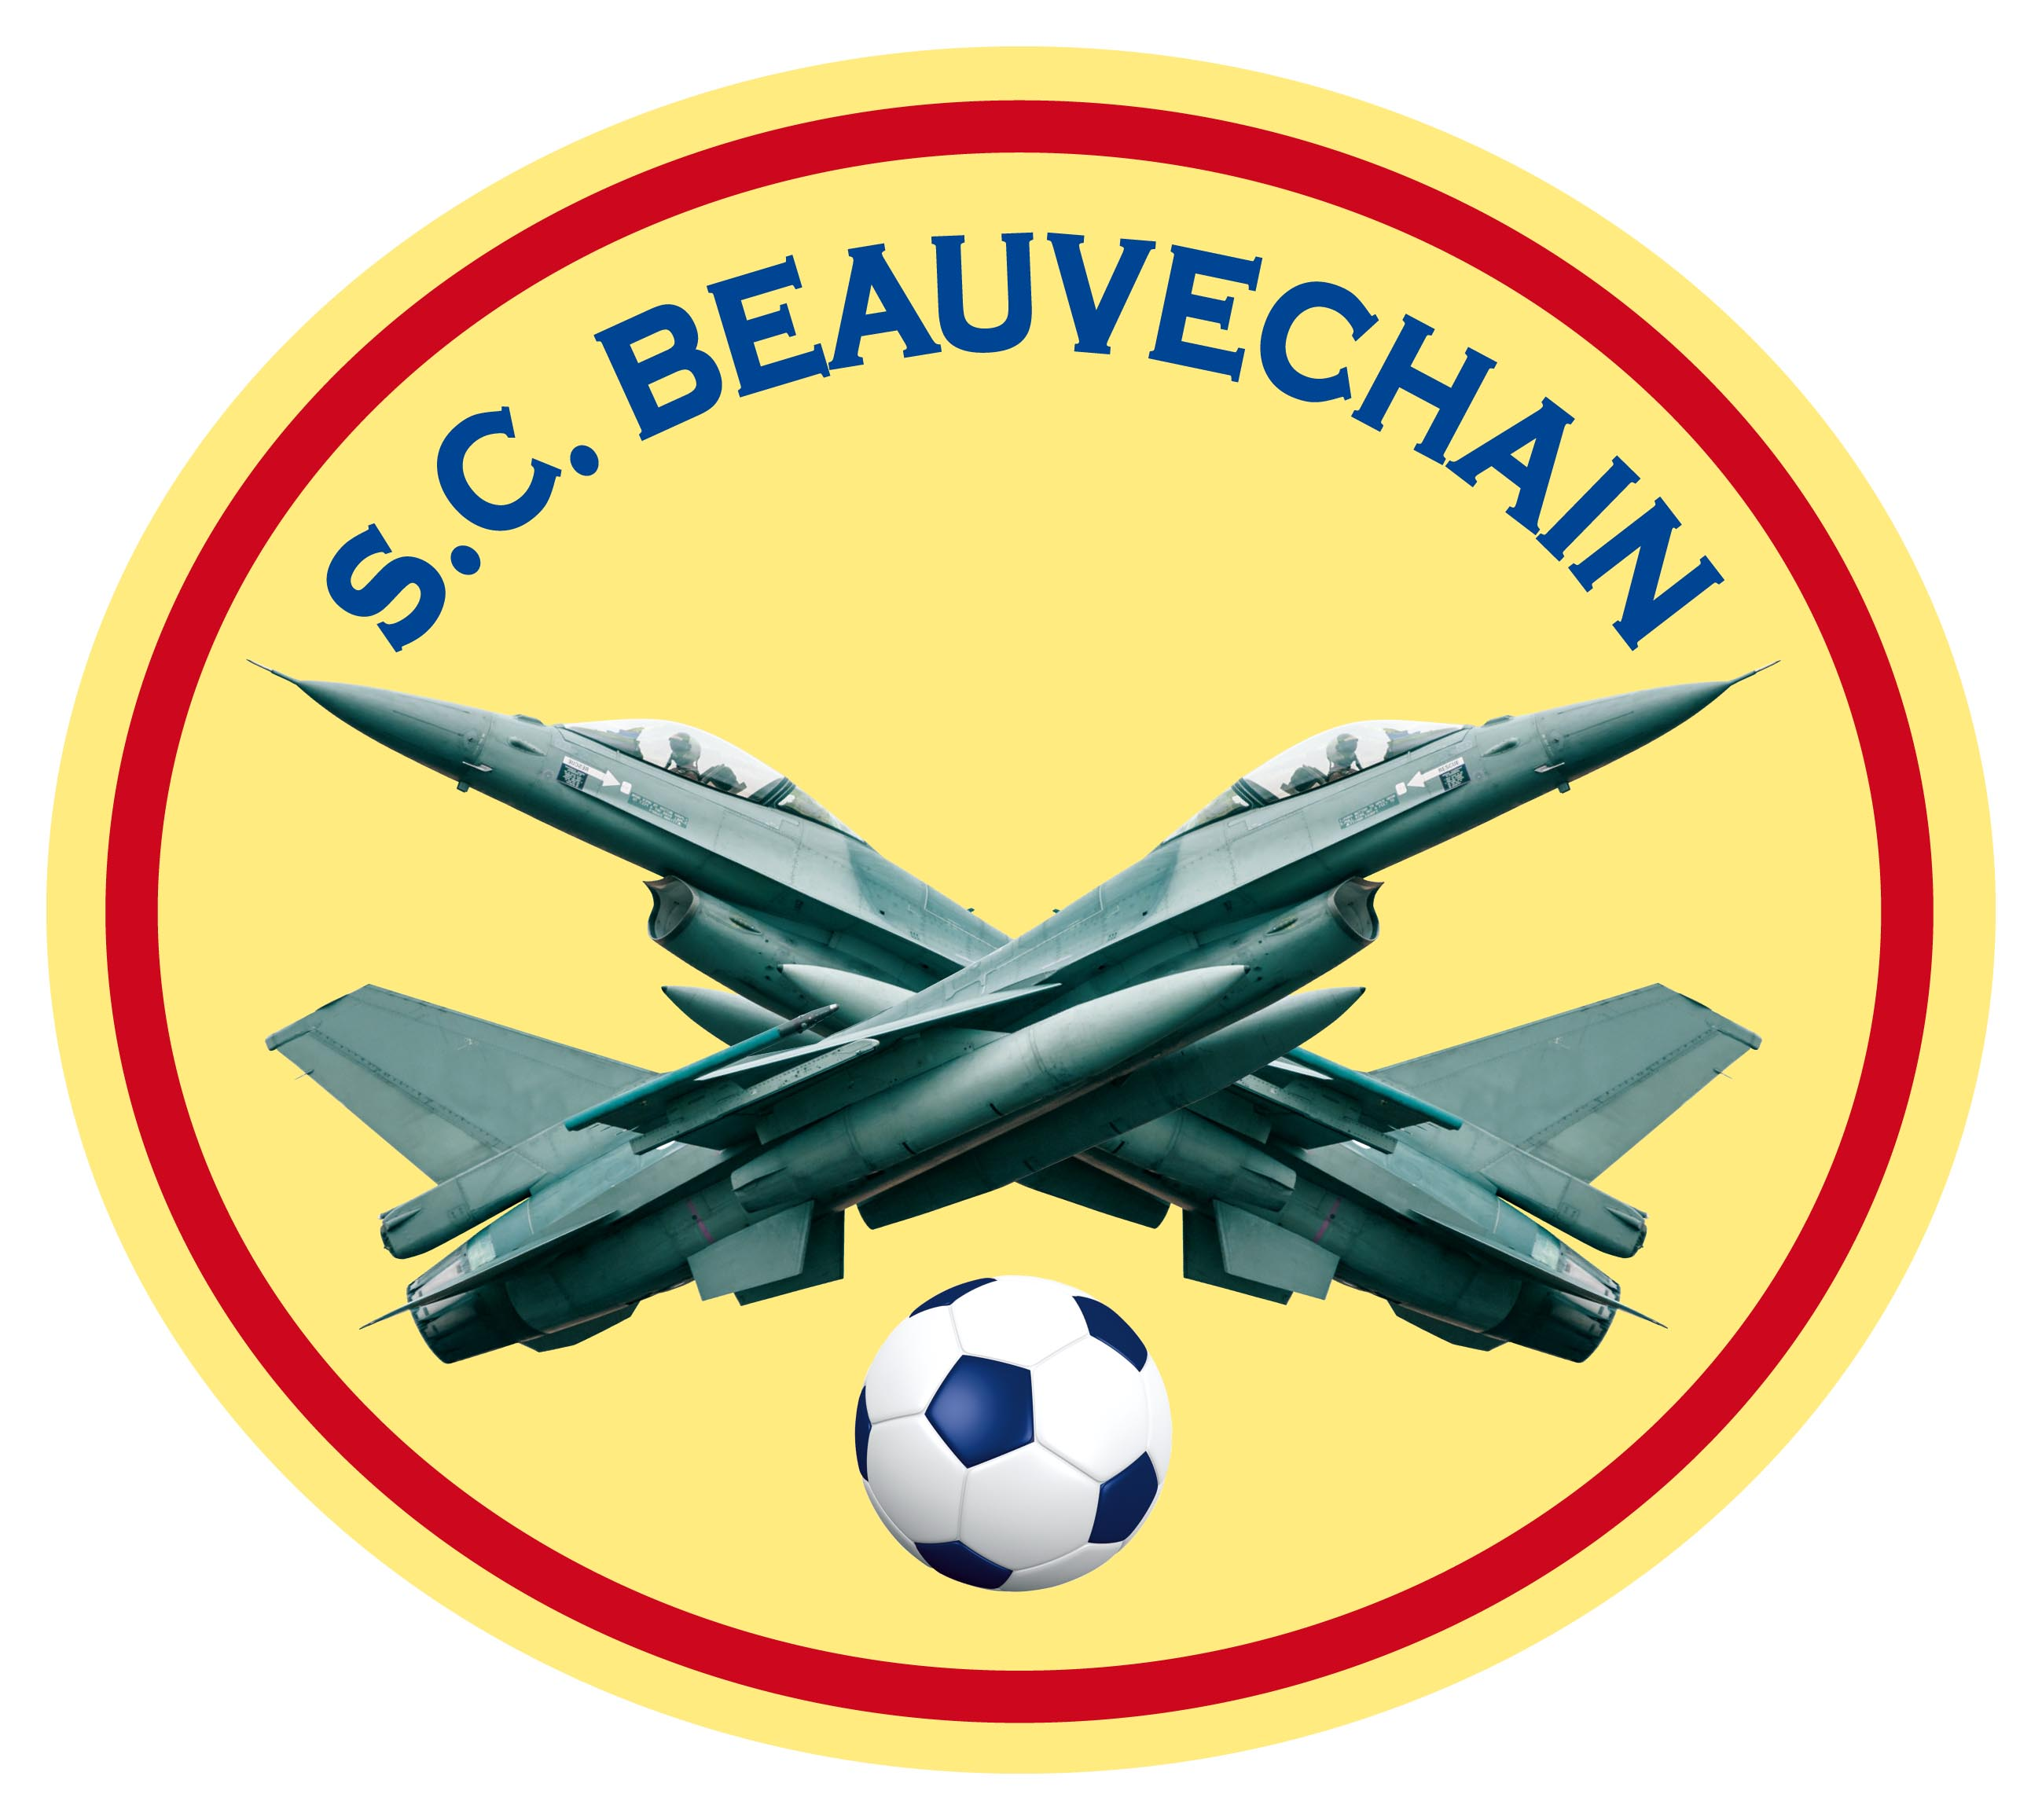 Sporting Club Beauvechain ASBL logo